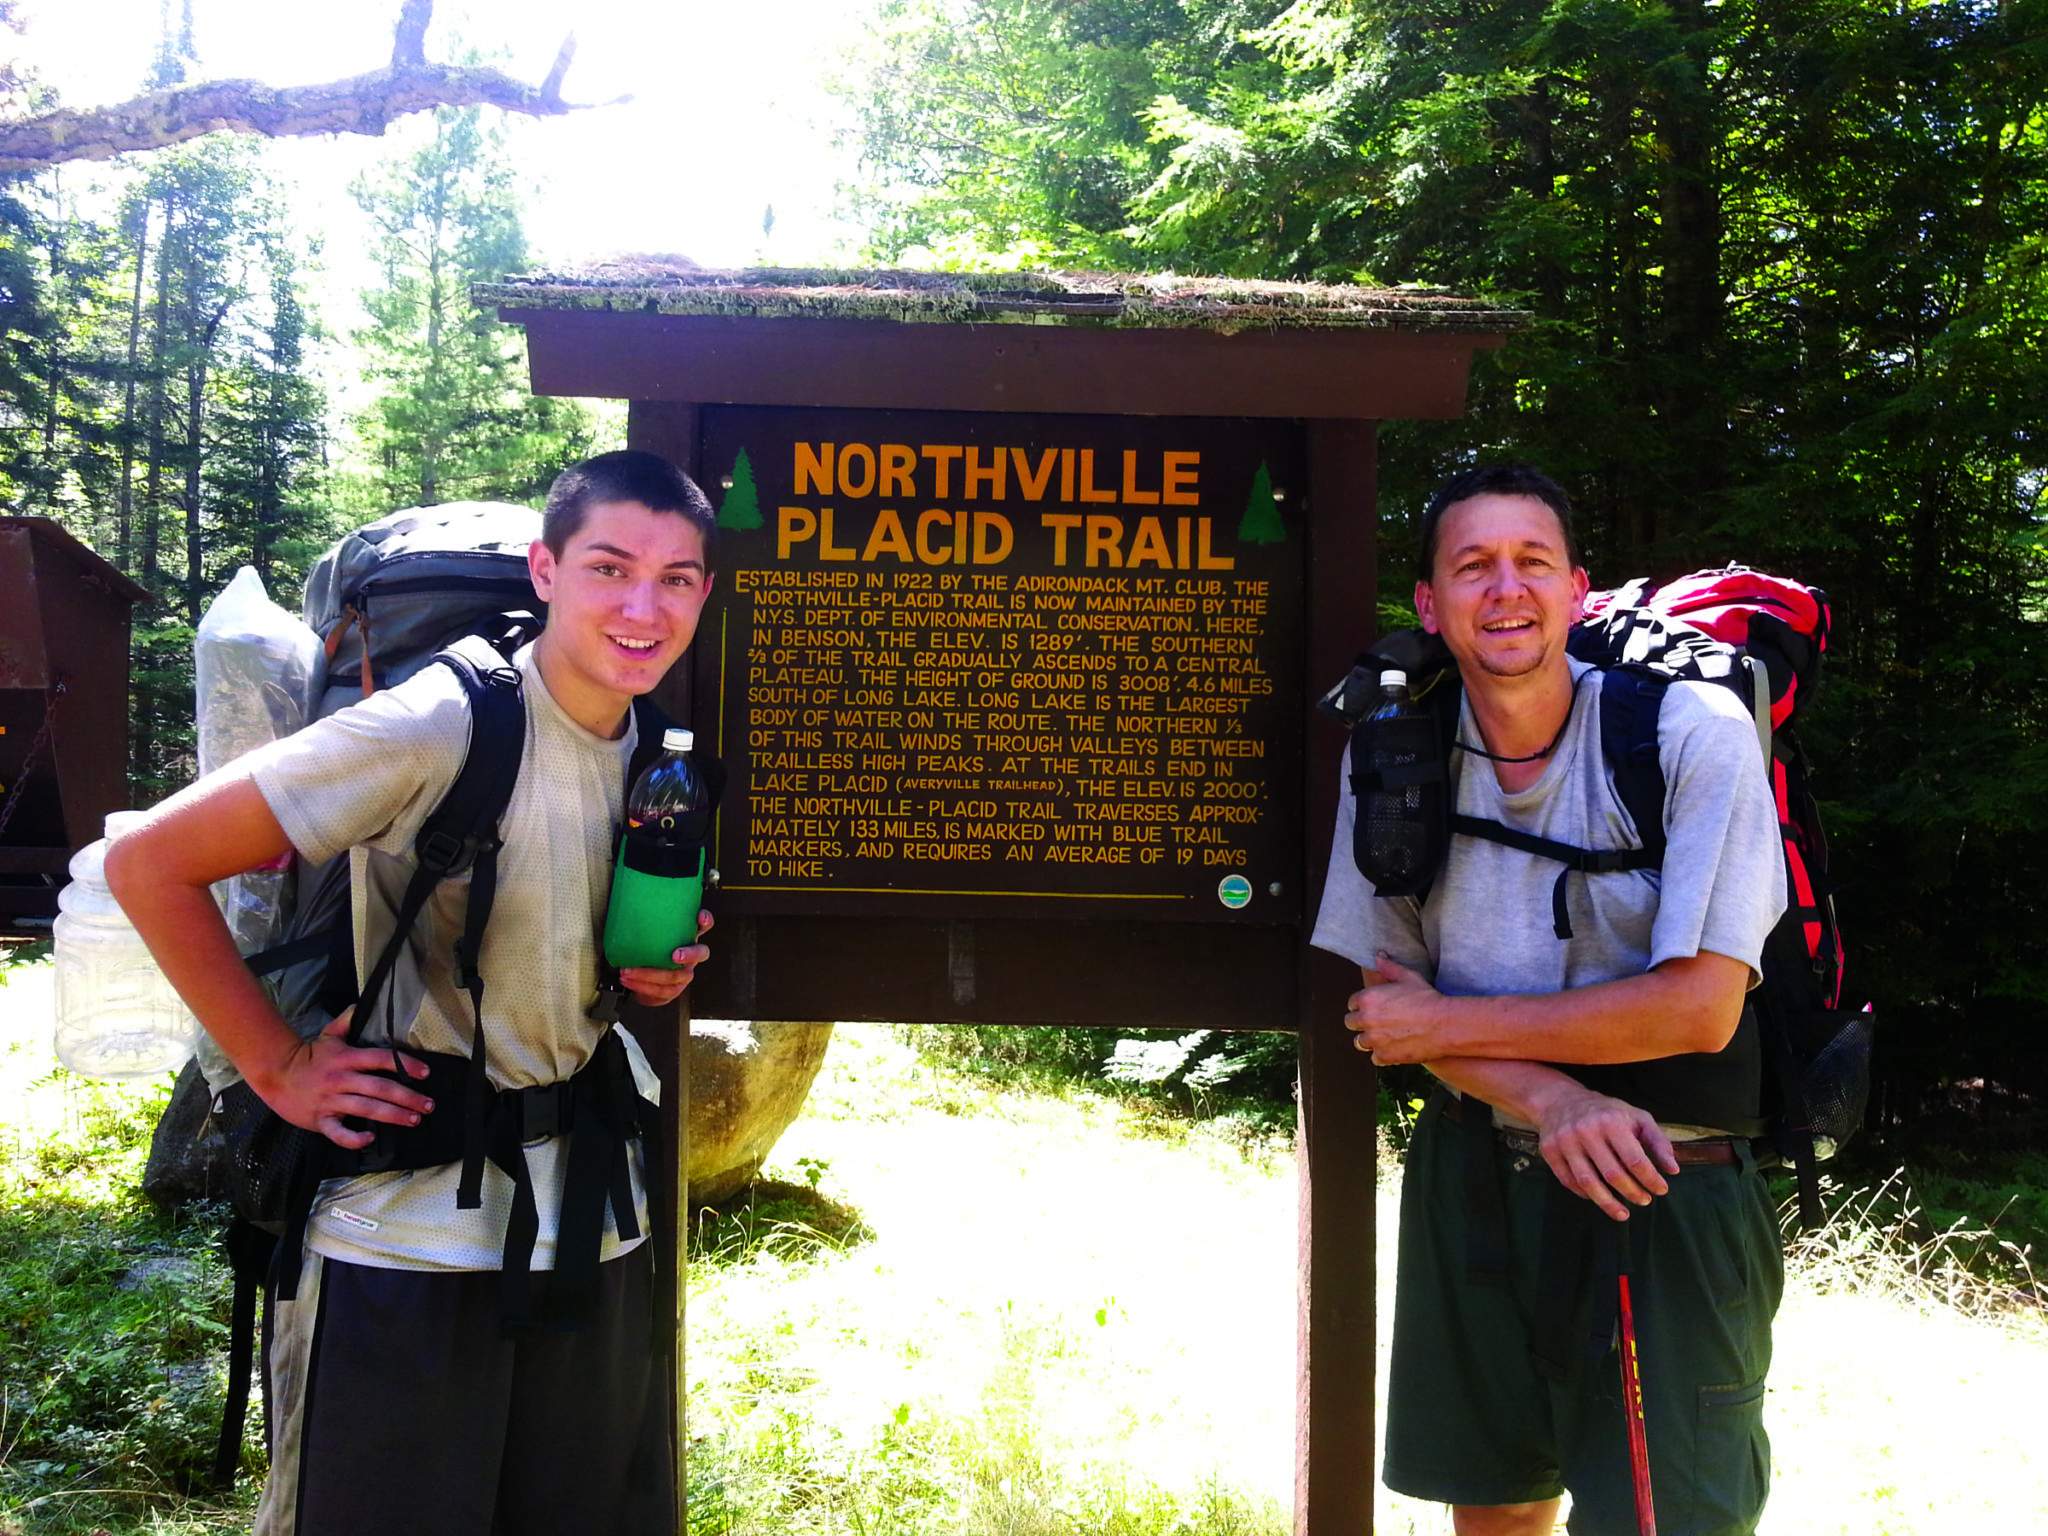 Baldwinsville father, son hike the NP Trail in record time